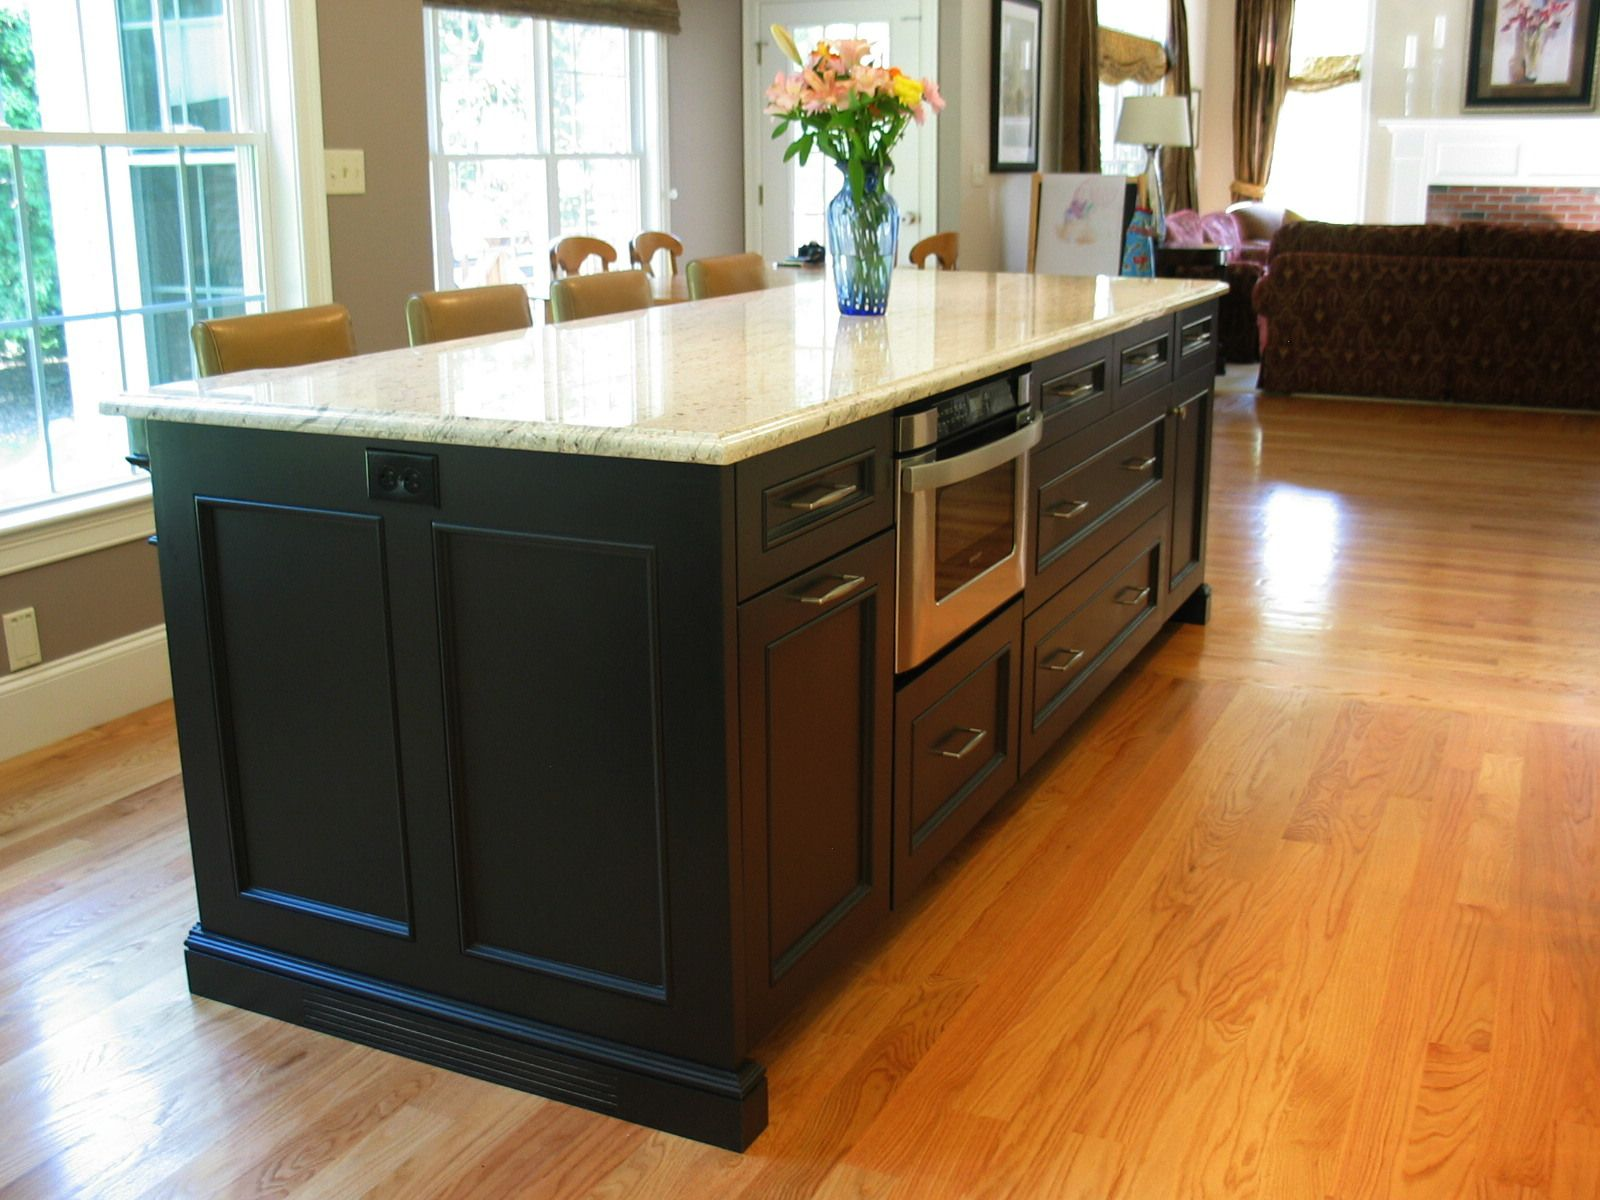 Rustic Kitchen Design Sudbury MA